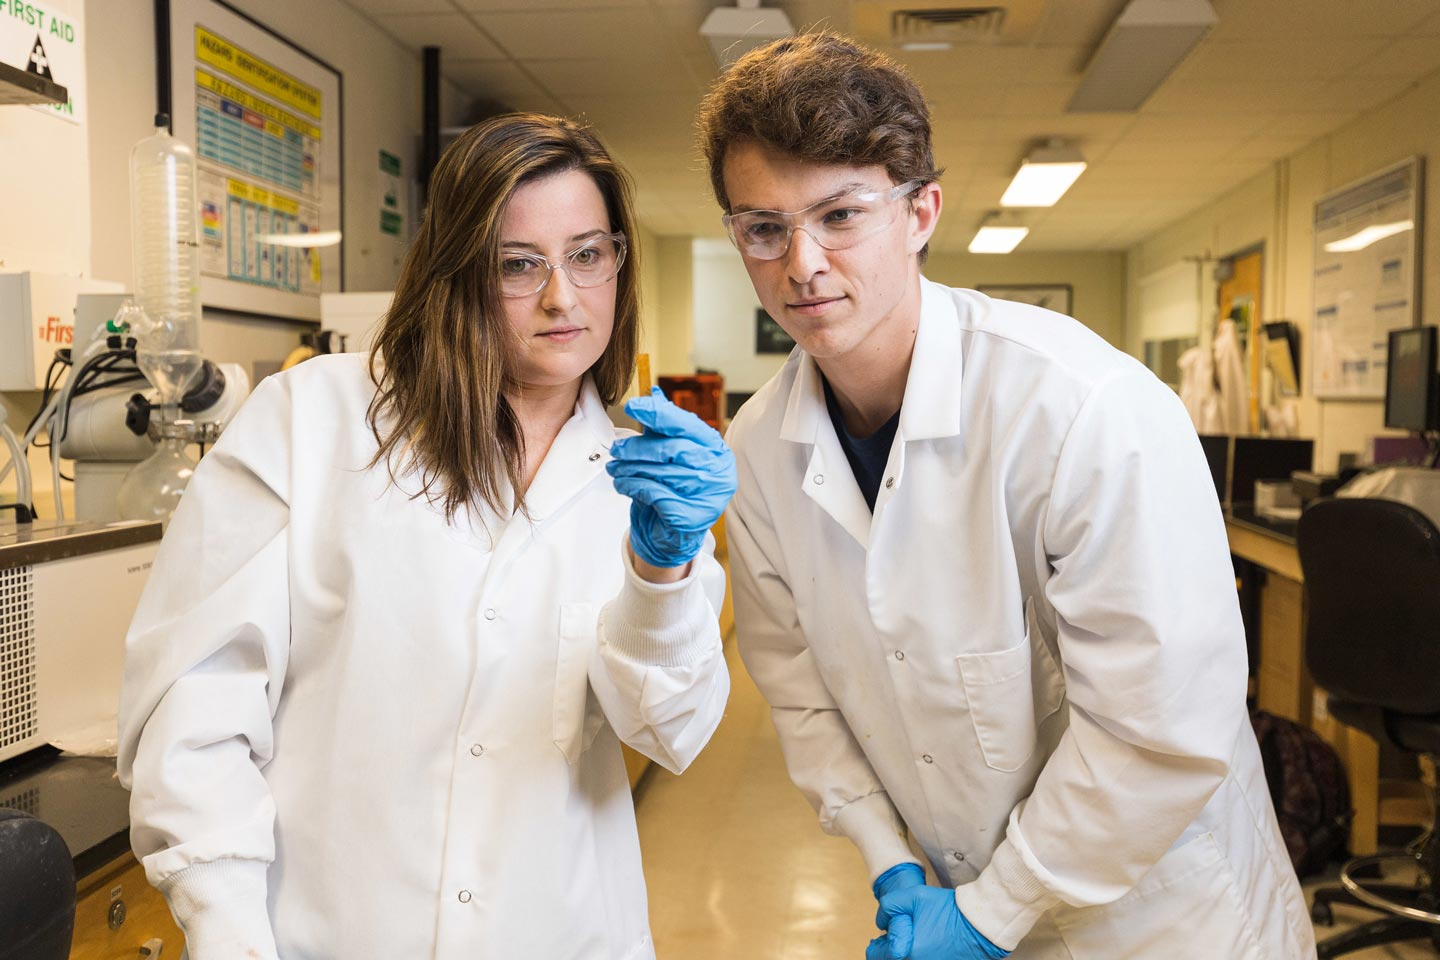 Prof. Melissa Gordon and Jimmy Hastie '22 (chemical engineering), an EXCEL Scholar working in her lab, inspect a piece of cured plant-based plastic.